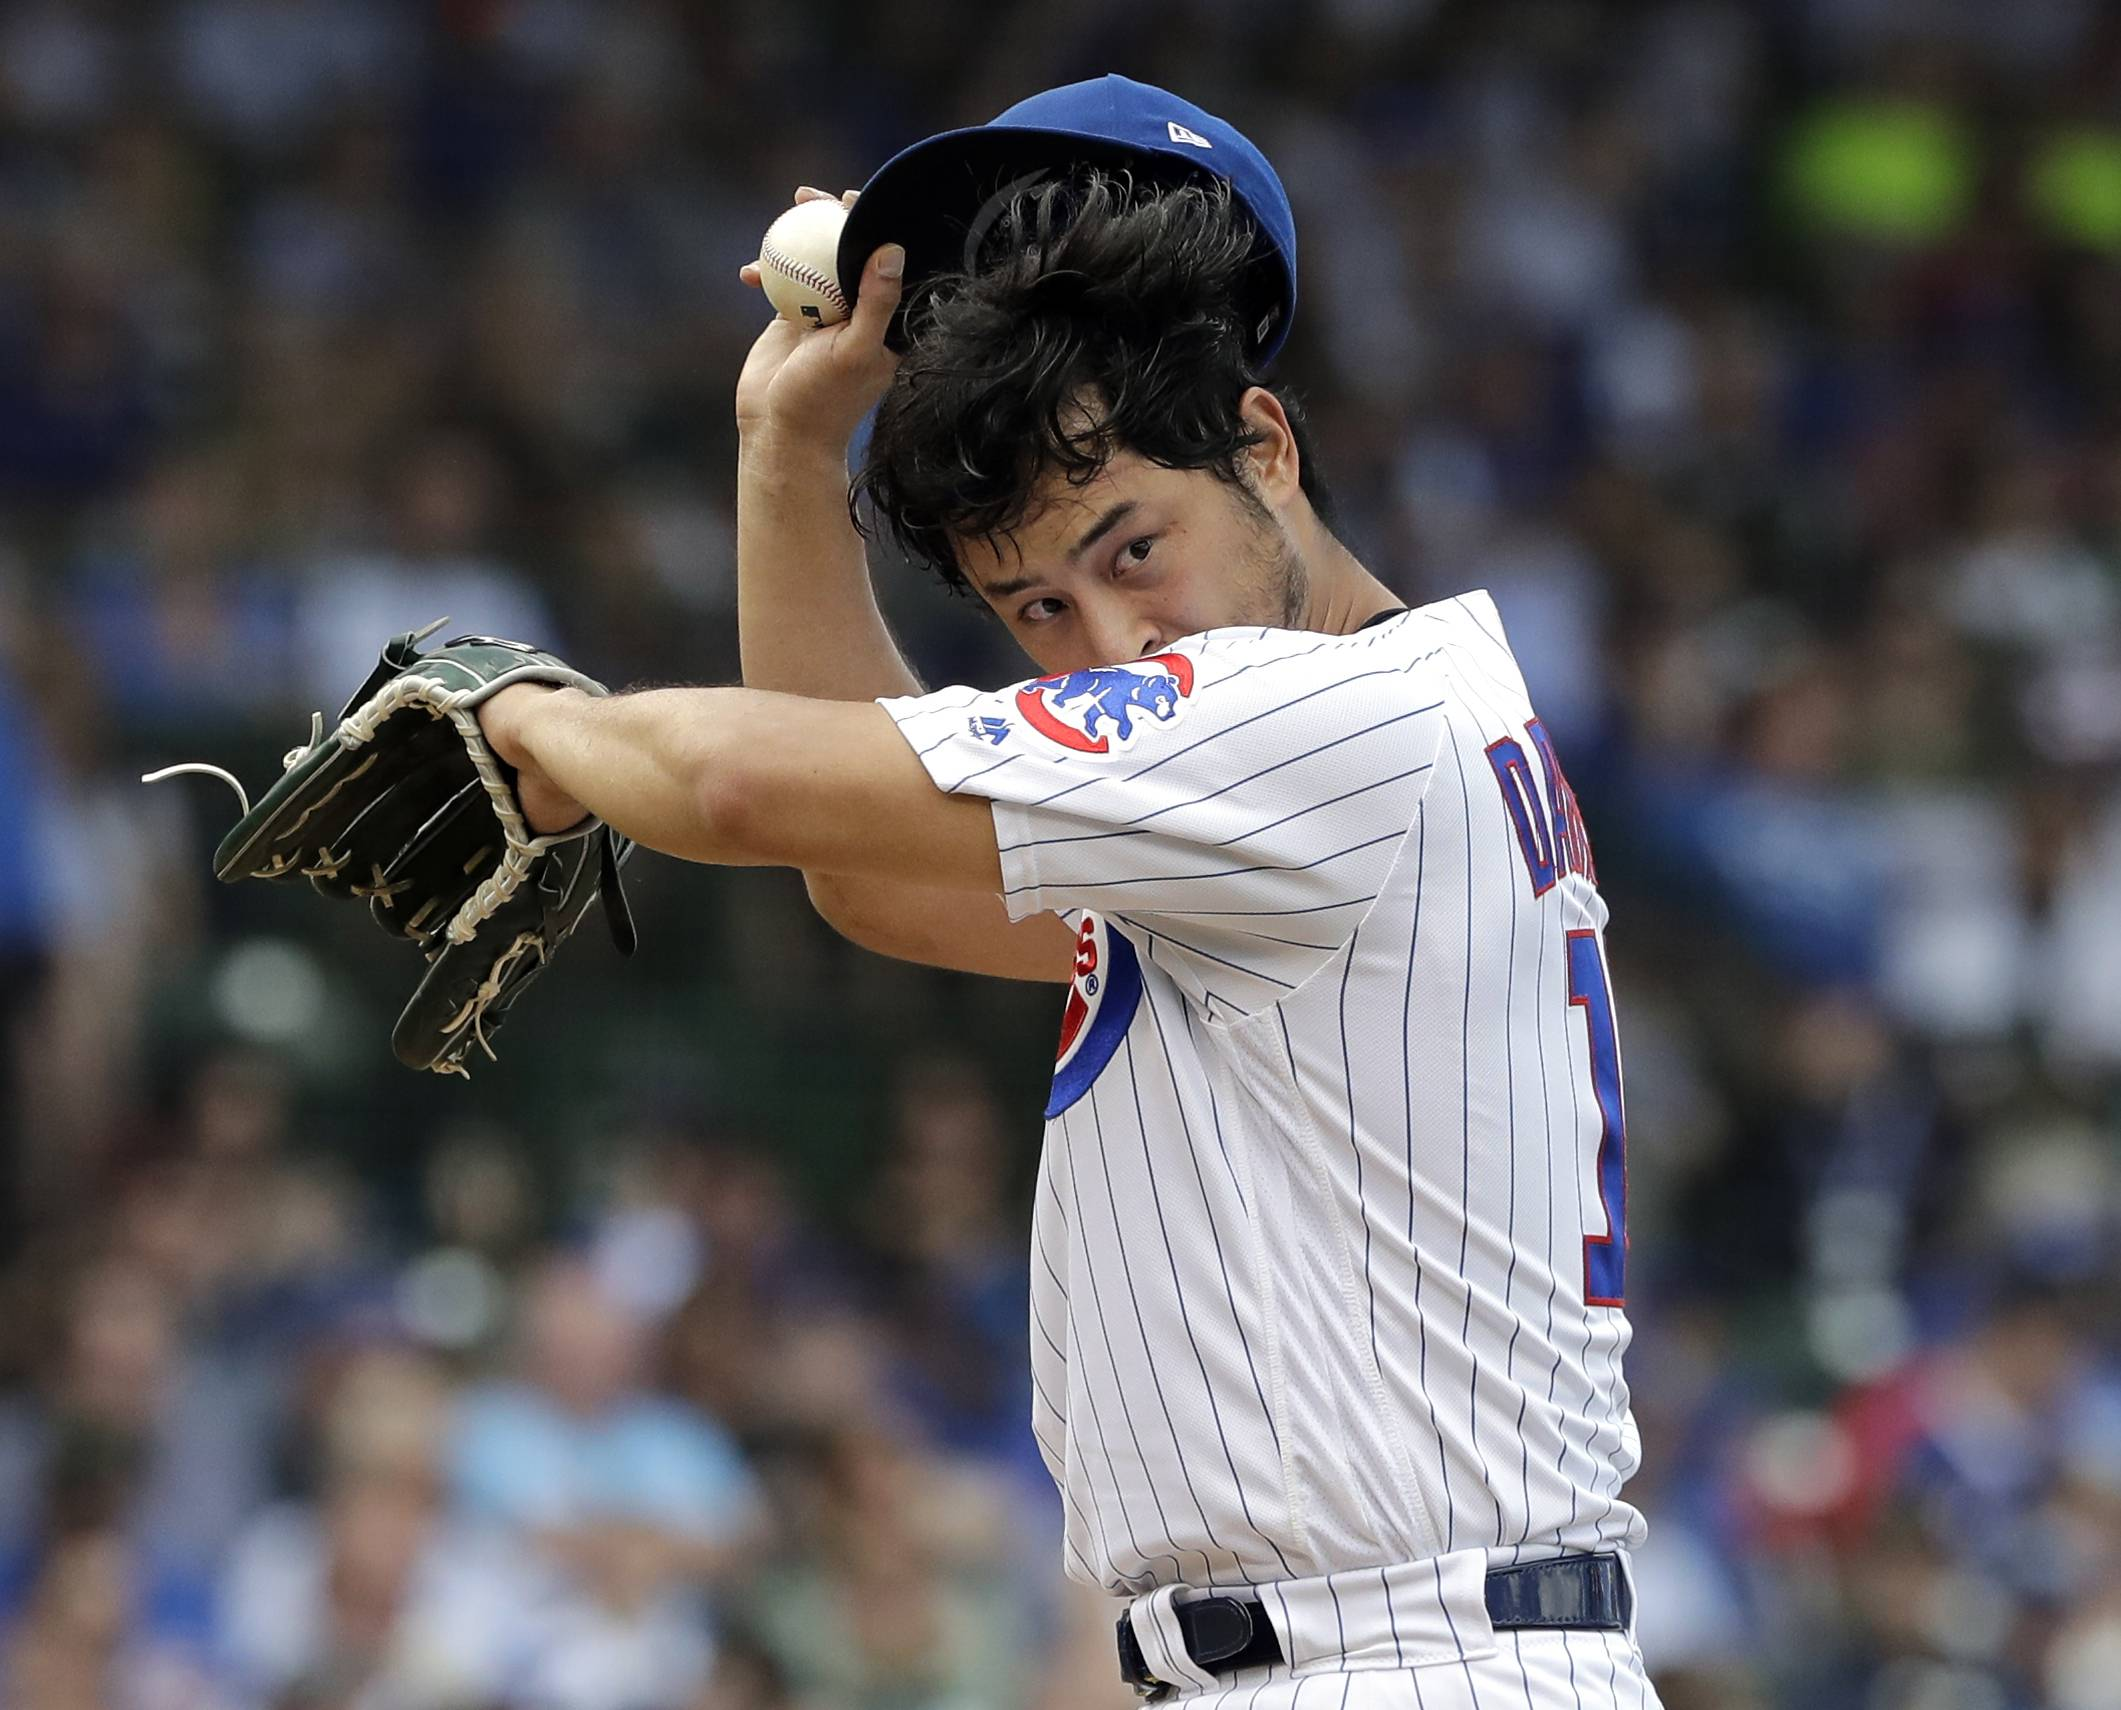 Yu Darvish made his longest start for the Chicago Cubs, who outlasted the Cincinnati Reds 8-6 Saturday at Wrigley Field.